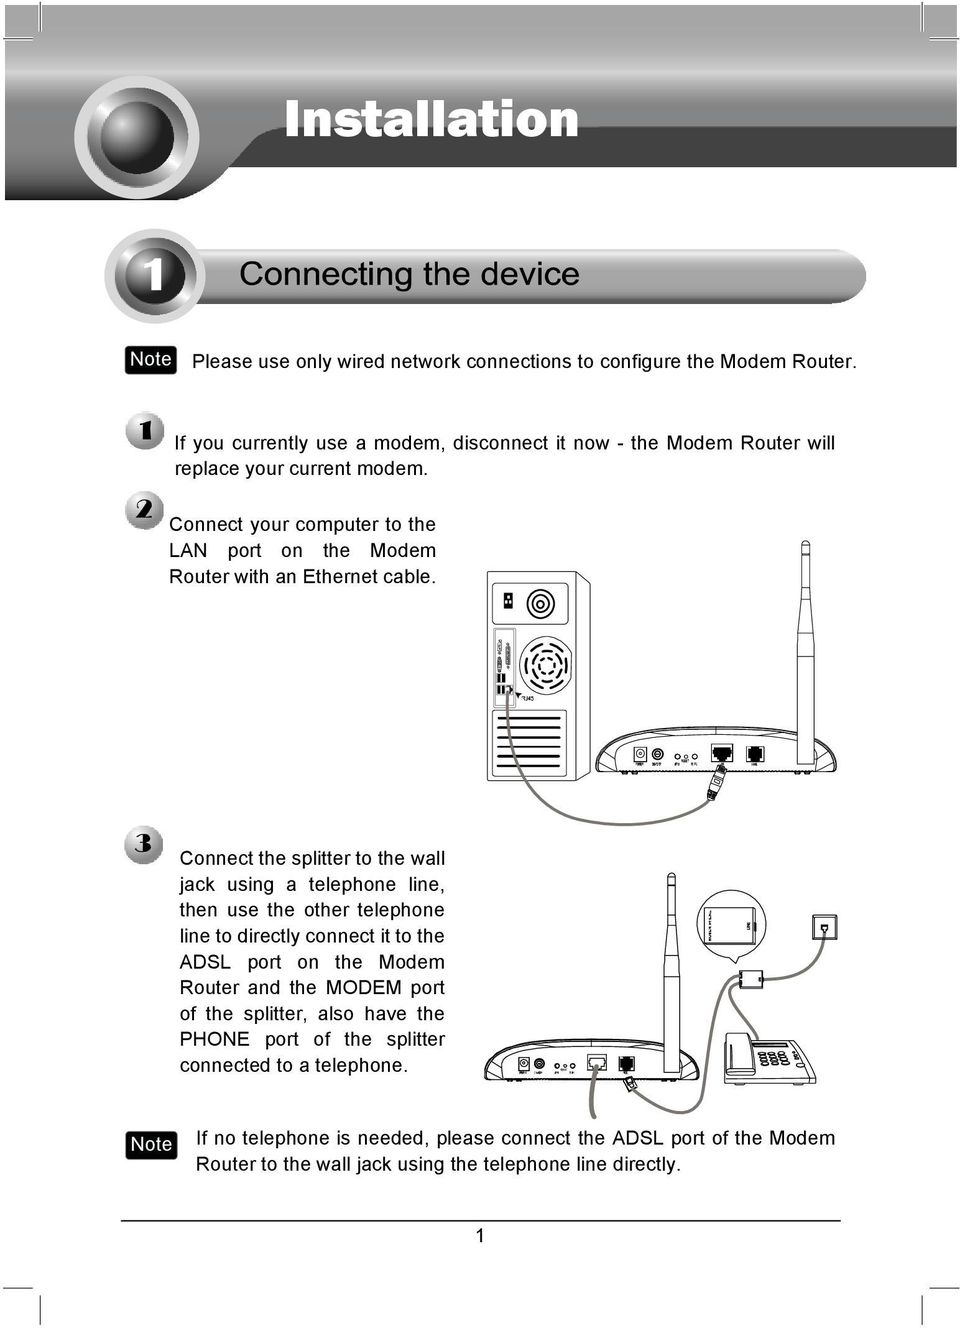 Replace Phone Line With Ethernet : replace, phone, ethernet, Installation., Currently, Modem,, Disconnect, Modem, Router, Replace, Current, Modem., Download